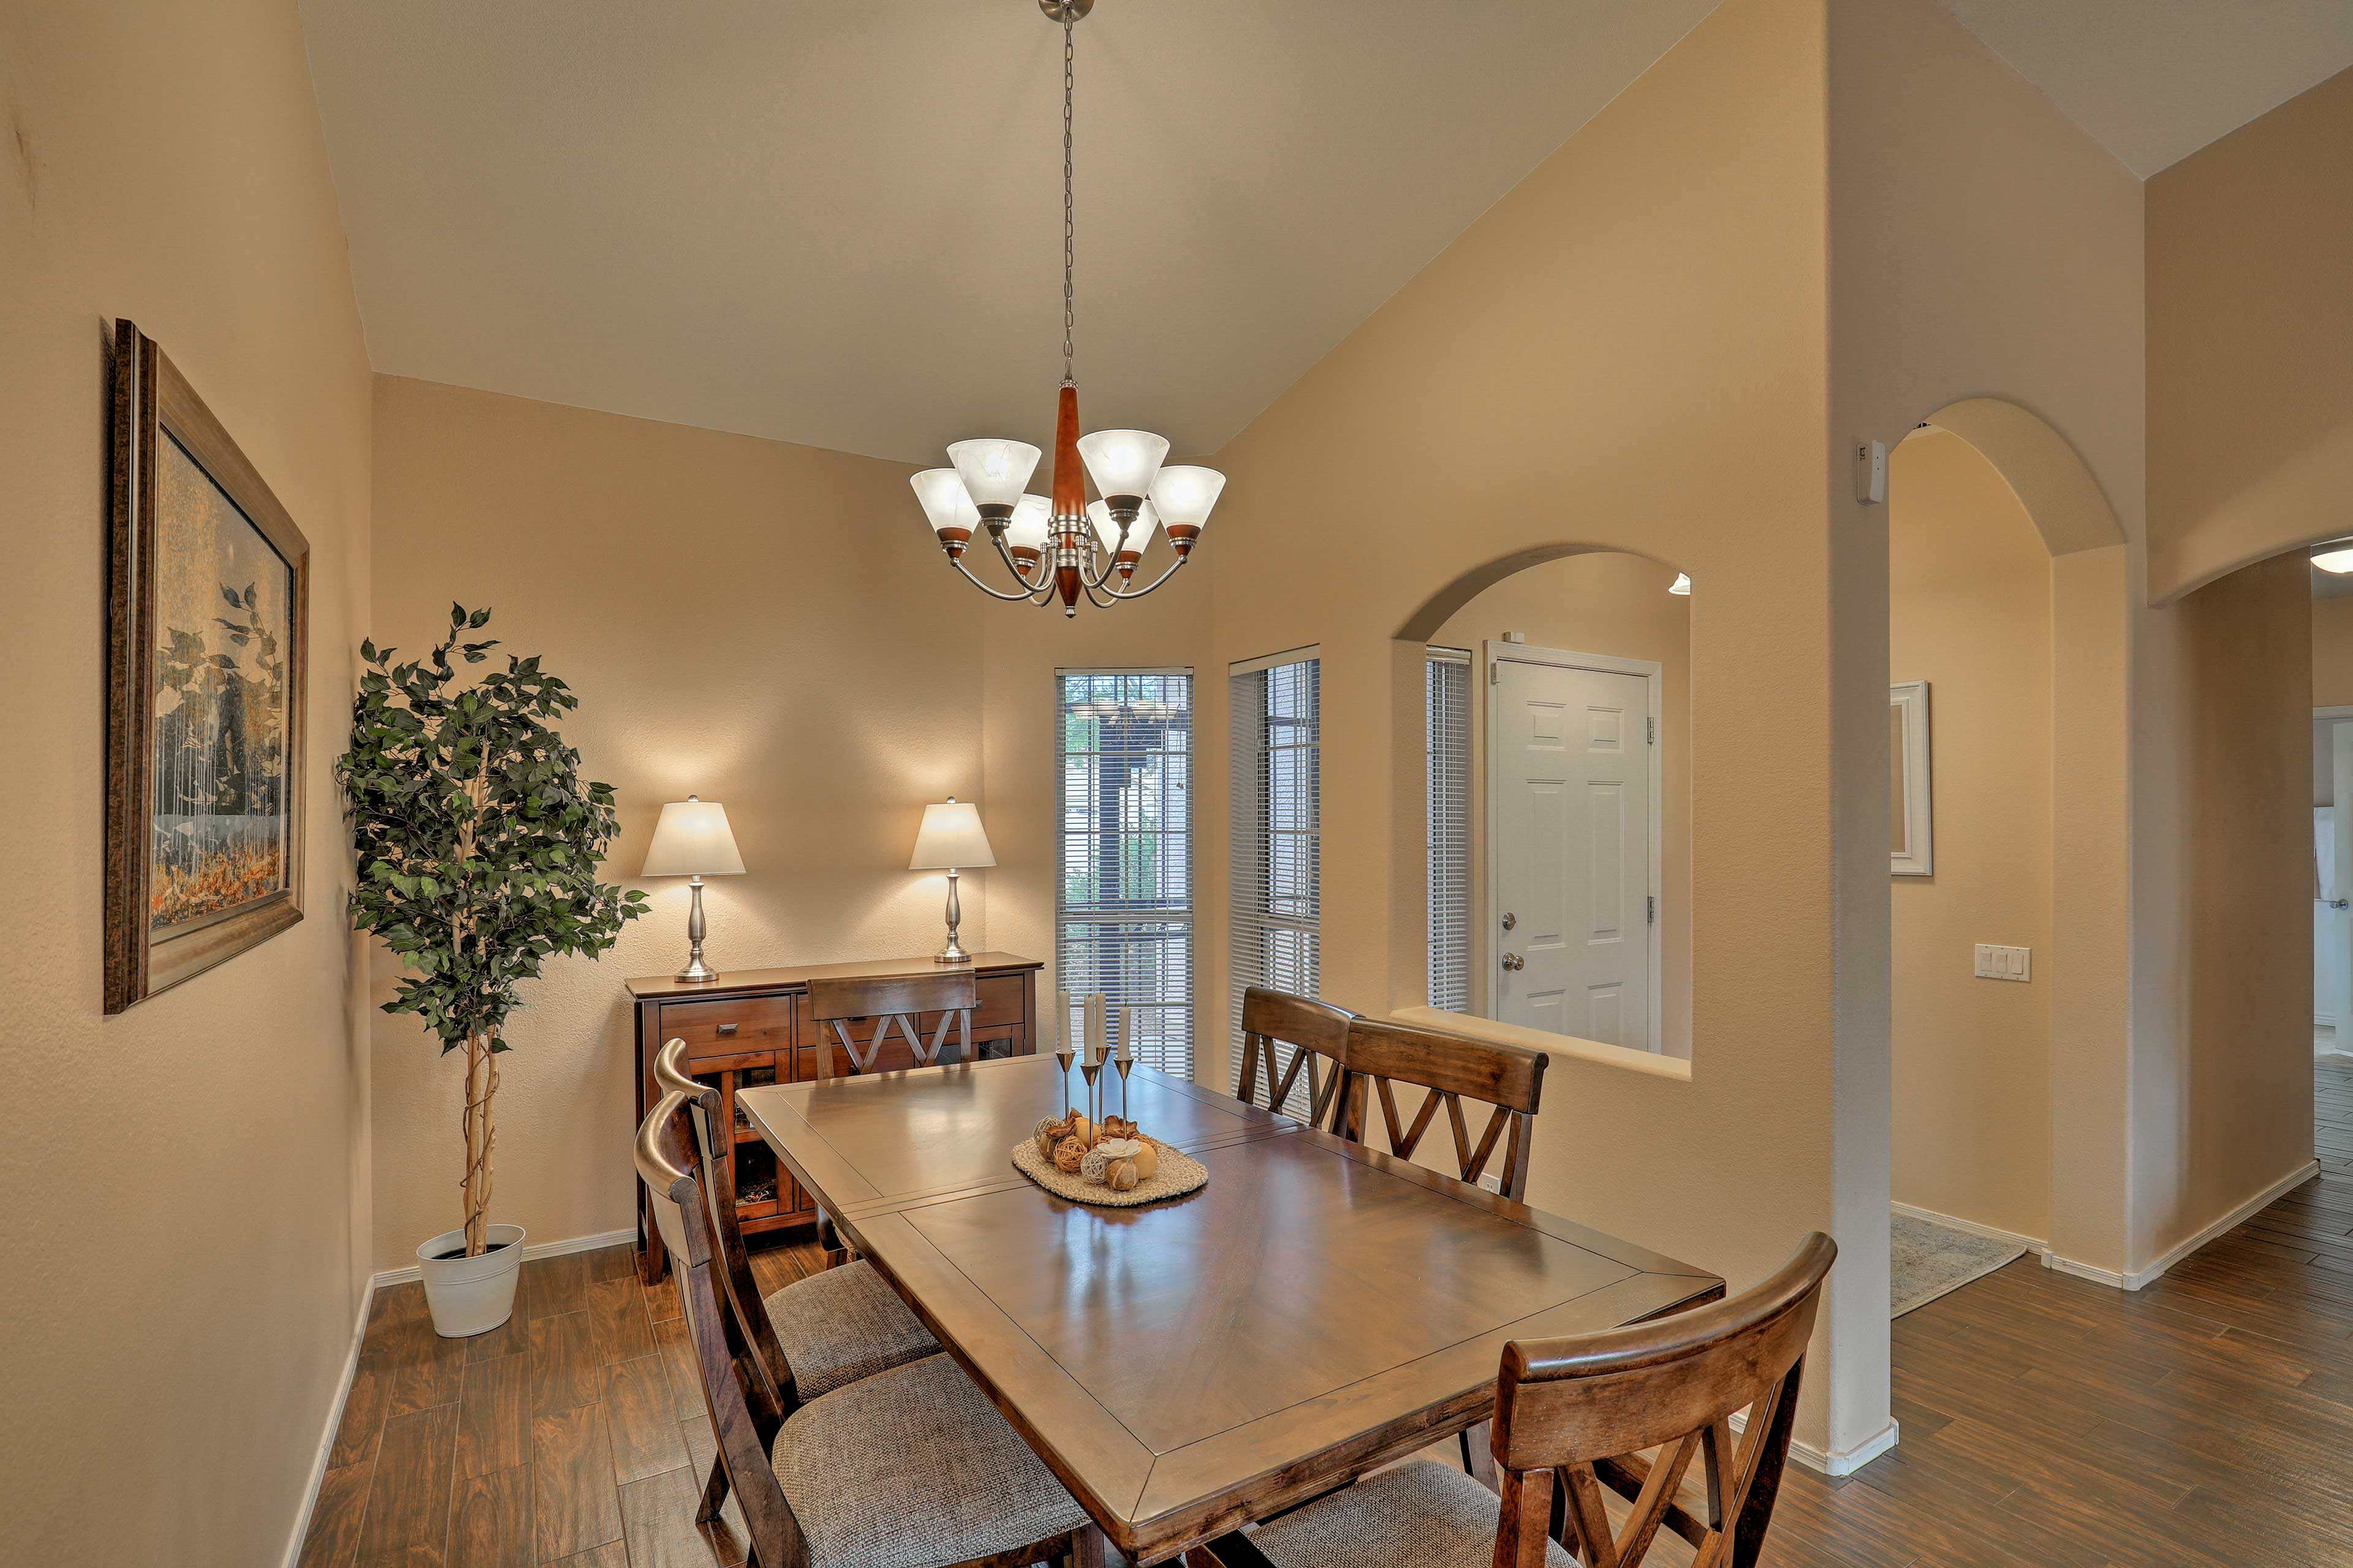 Savor meals together at the large dining table.